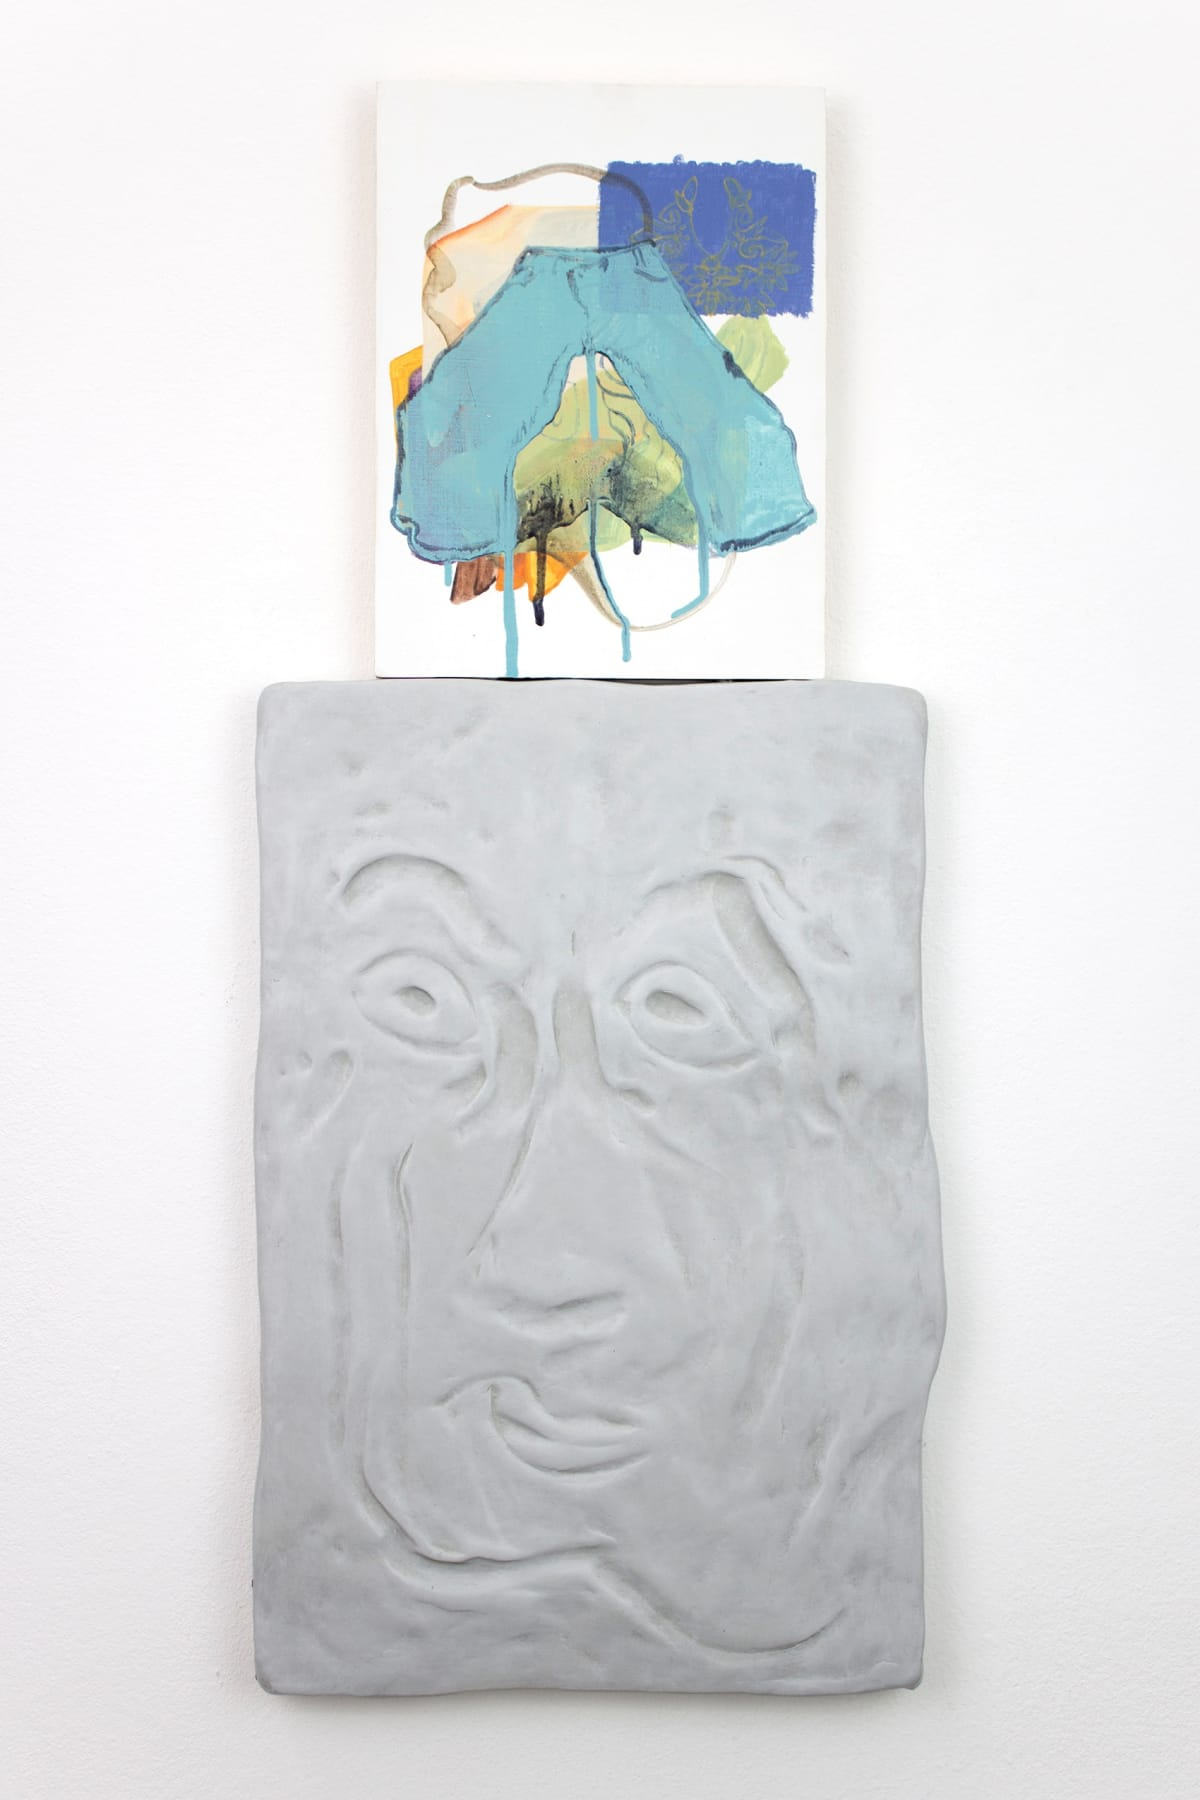 titania seidl lukas thaler, artist, artwork shows a relief of a face with a caricature facial expression ontop of its head is a painting like a thought bubble showing shapes and a pair of lightblue trousers